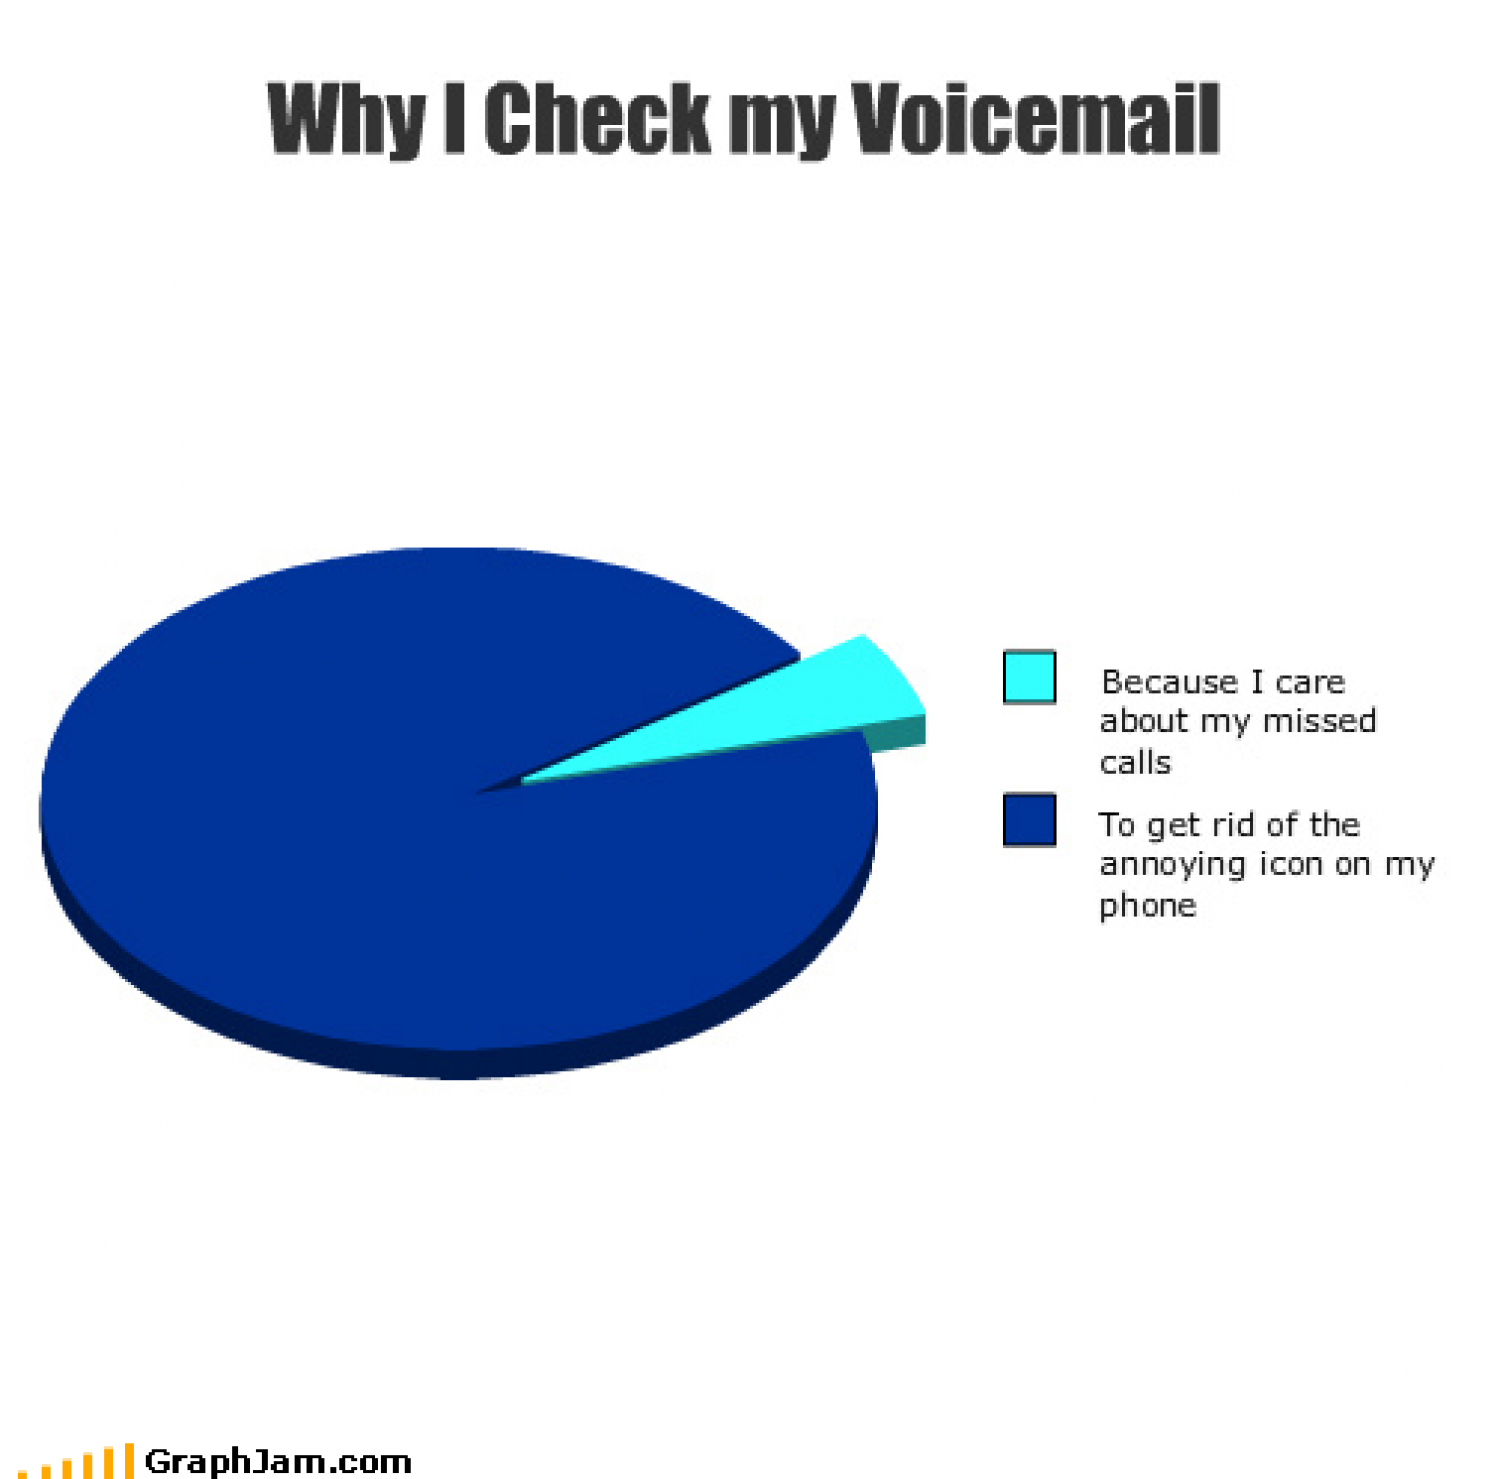 Why I check my voicemail Infographic